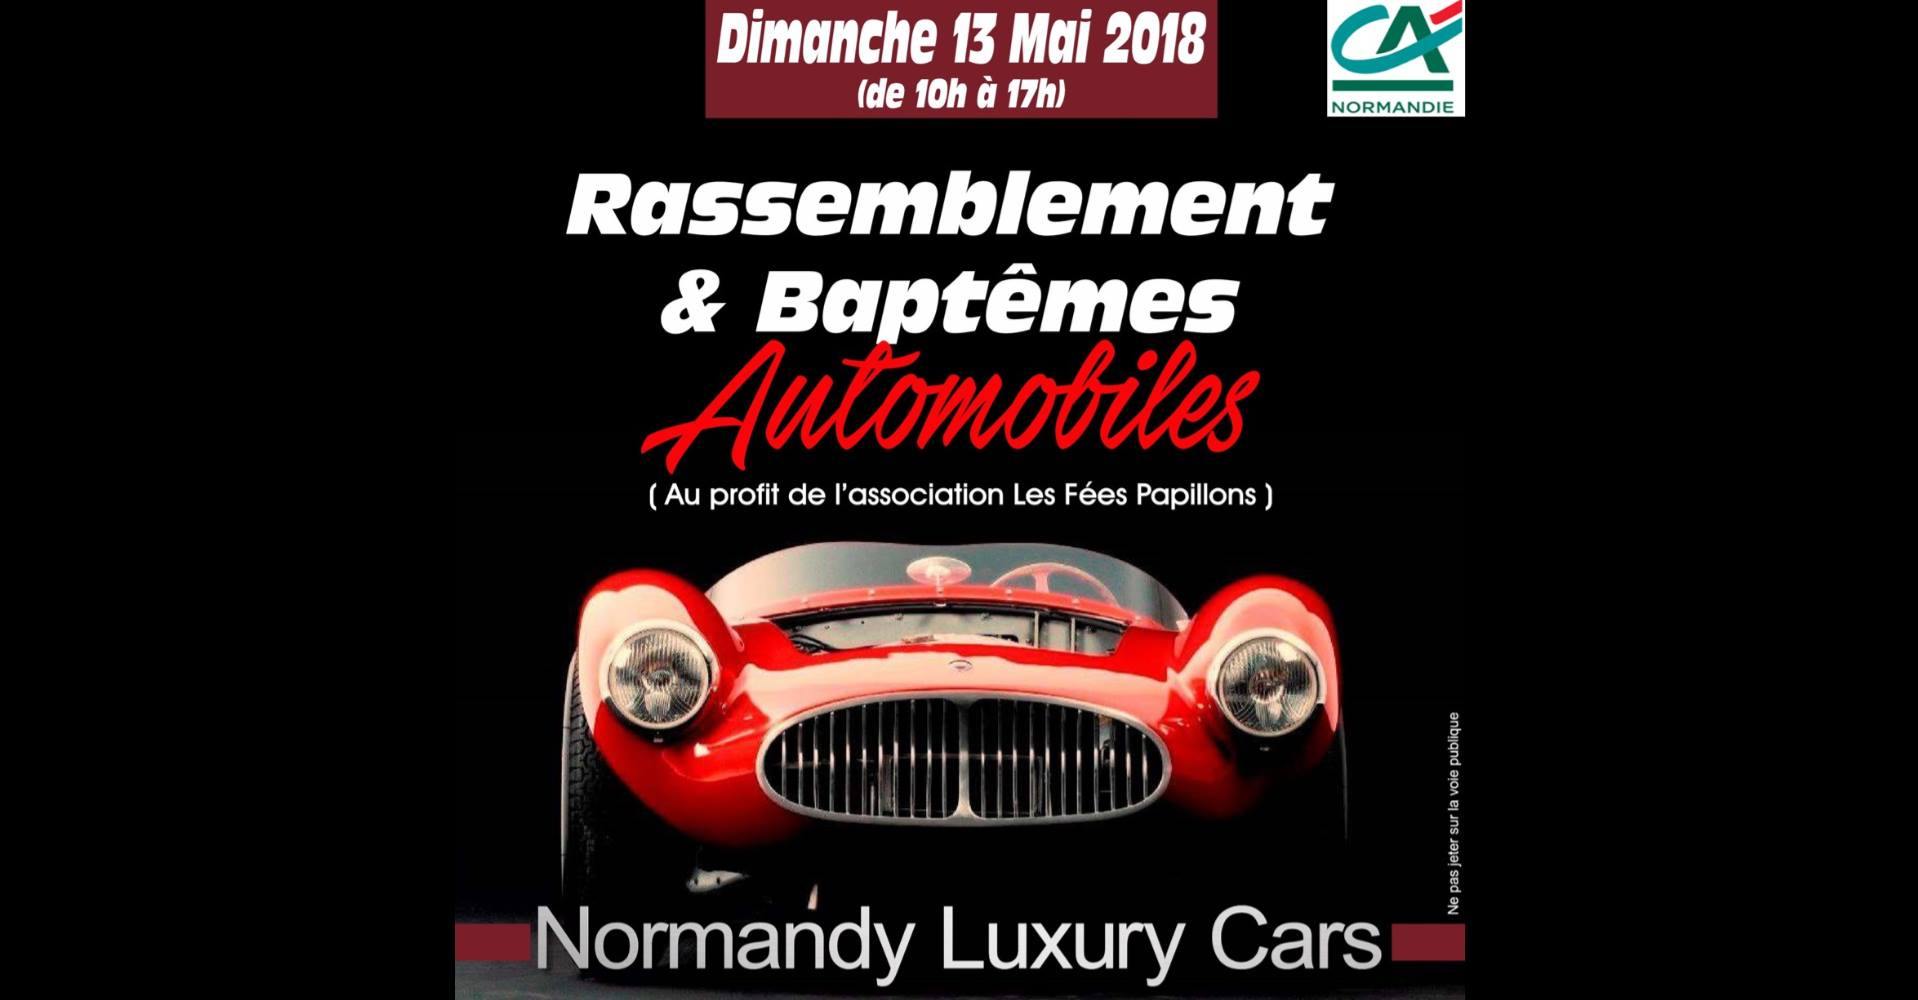 Rendez vous le 13 mai chez Normandy Luxury Cars!